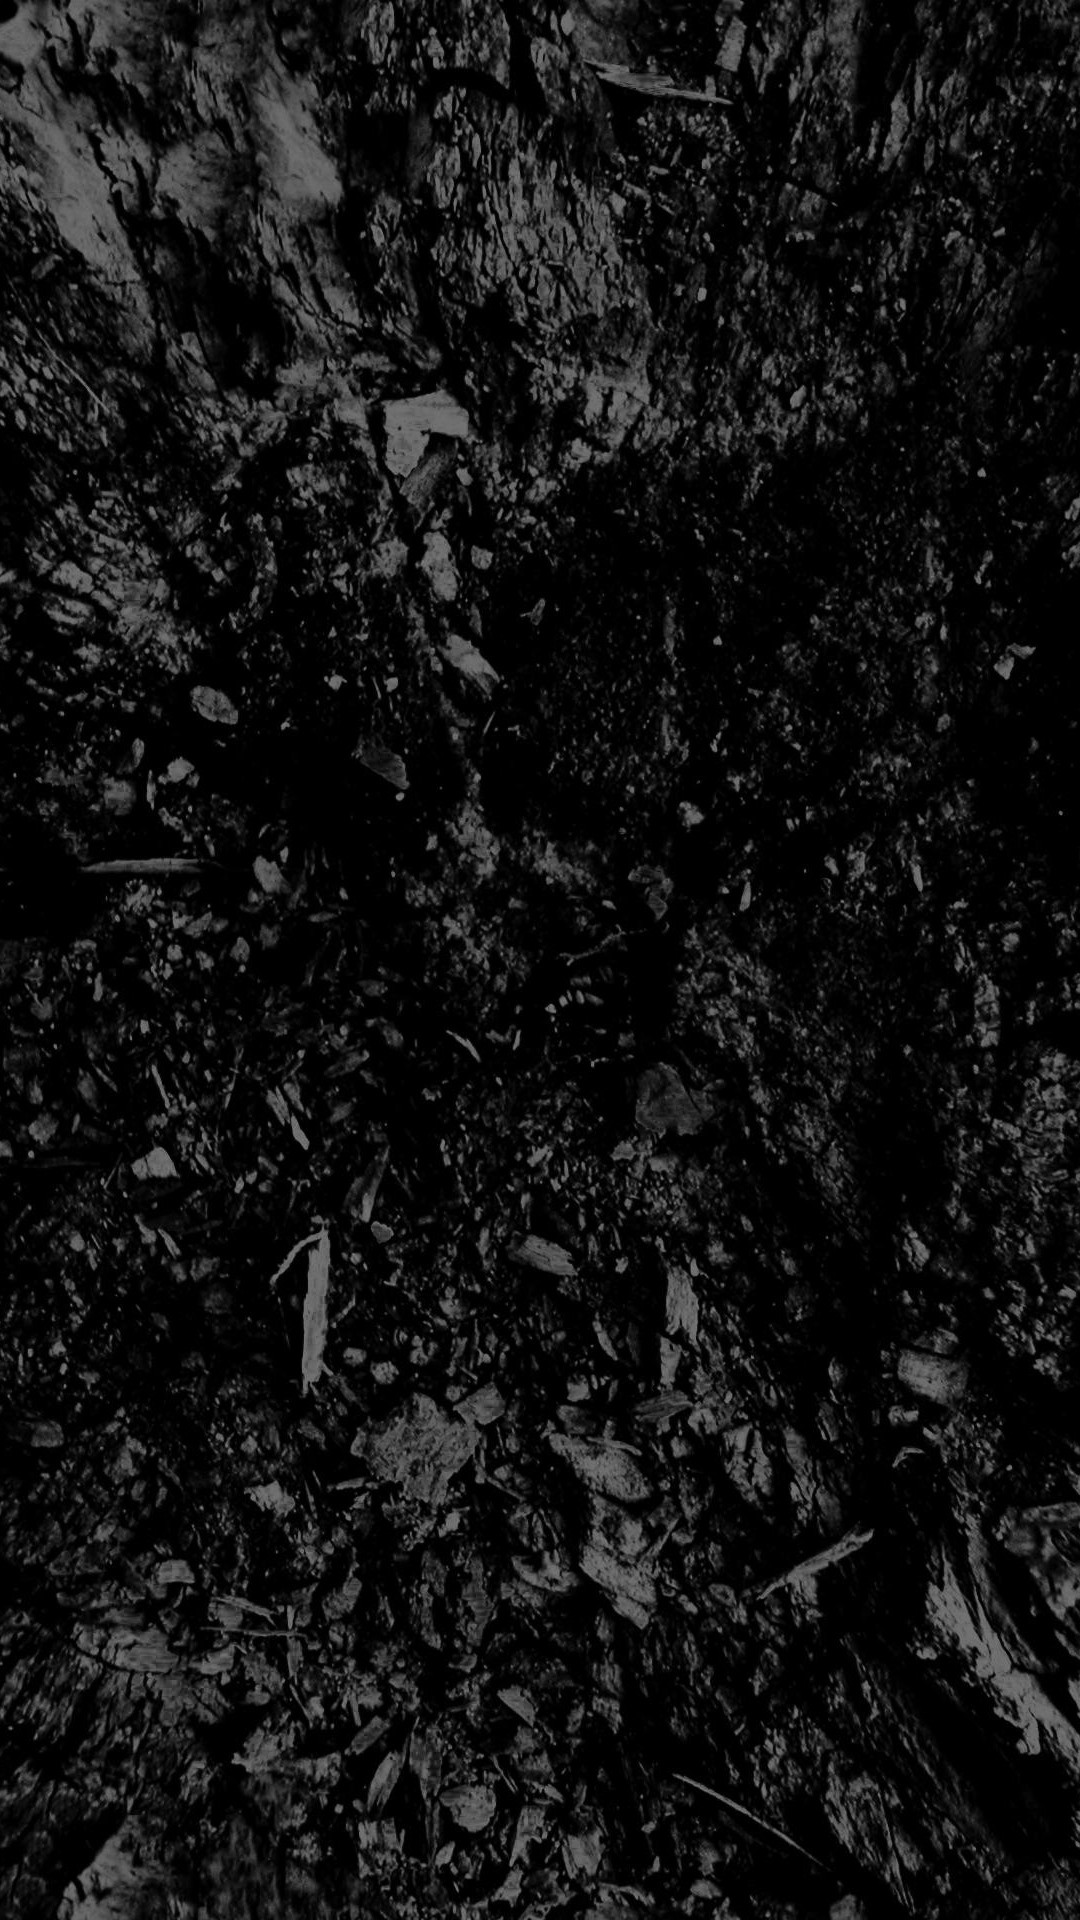 Preview wallpaper dark, black and white, abstract, black background  1080×1920